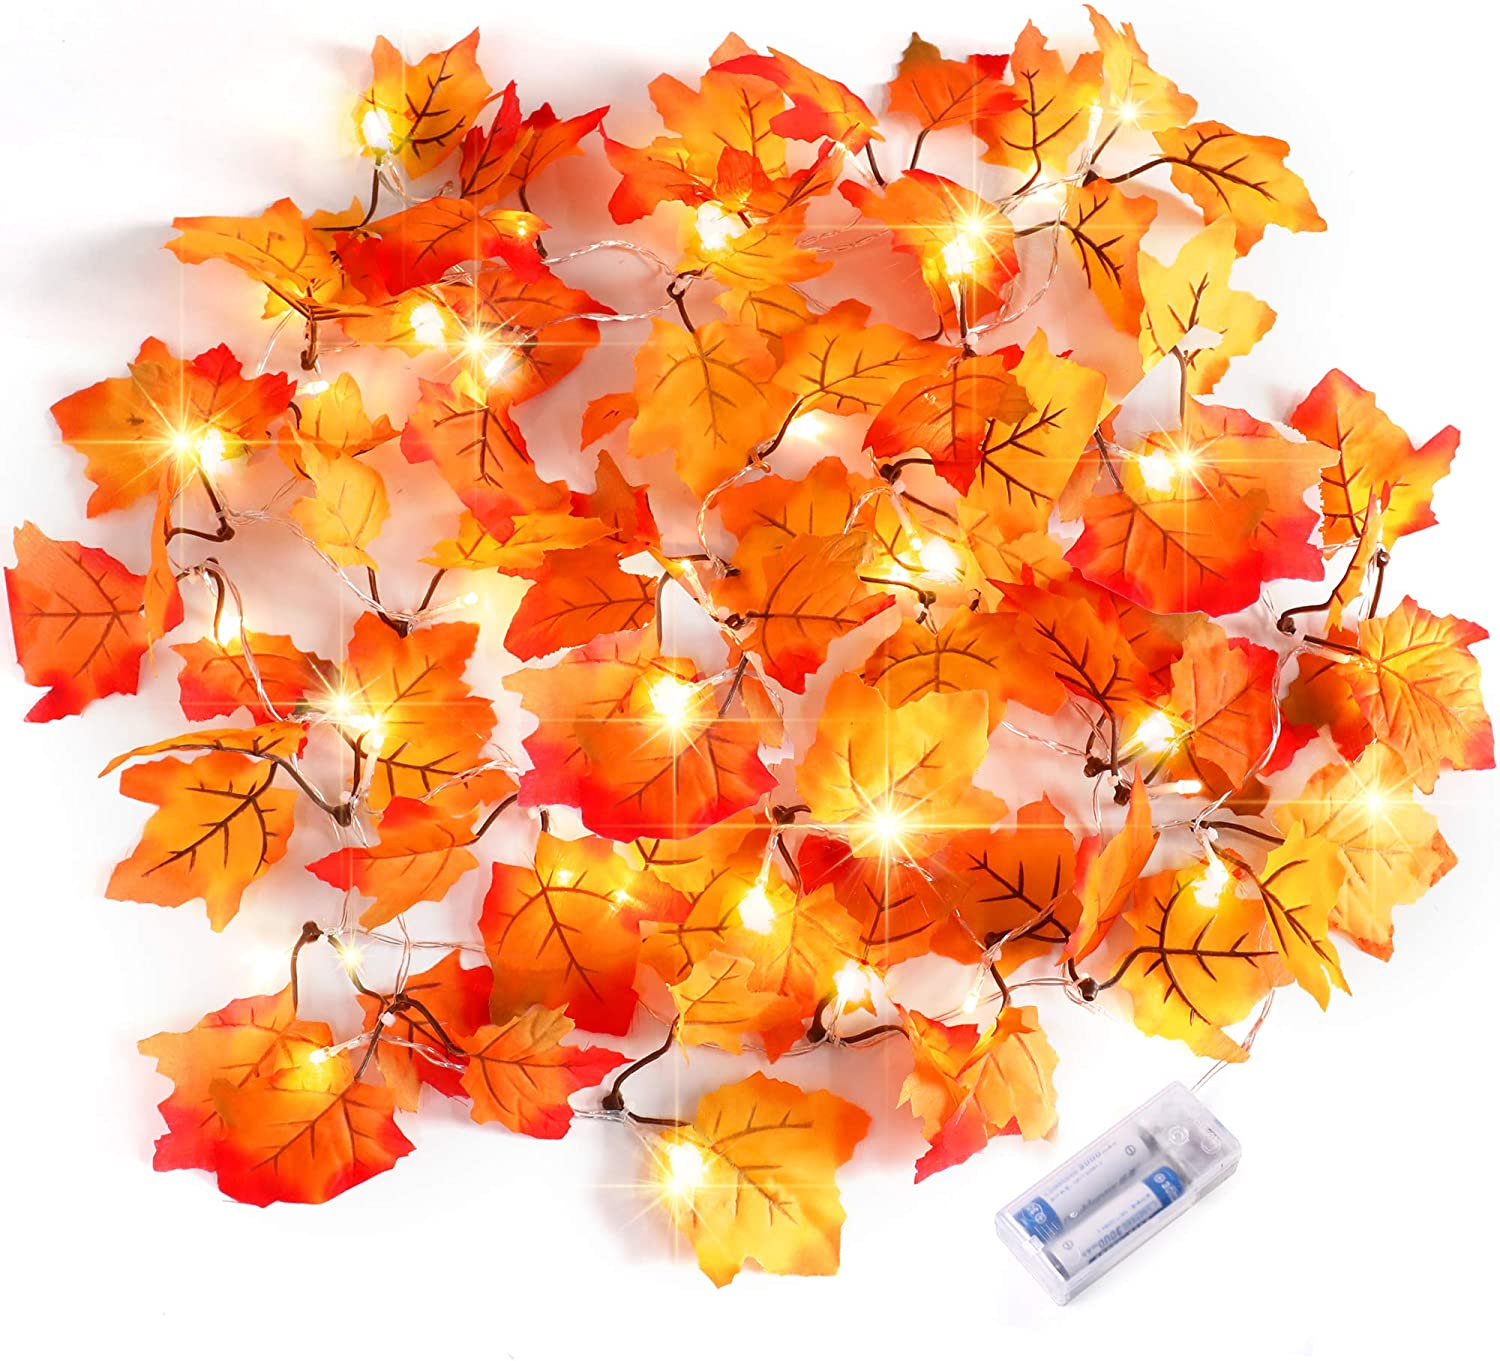 Thanksgiving Decorations Lighted Fall Garland, Thankgiving Decor for Indoor Outdoor Home, Christmas Decorations Party Thanksgiving Gift Waterproof Maple Leaf String Lights (4 Pack)